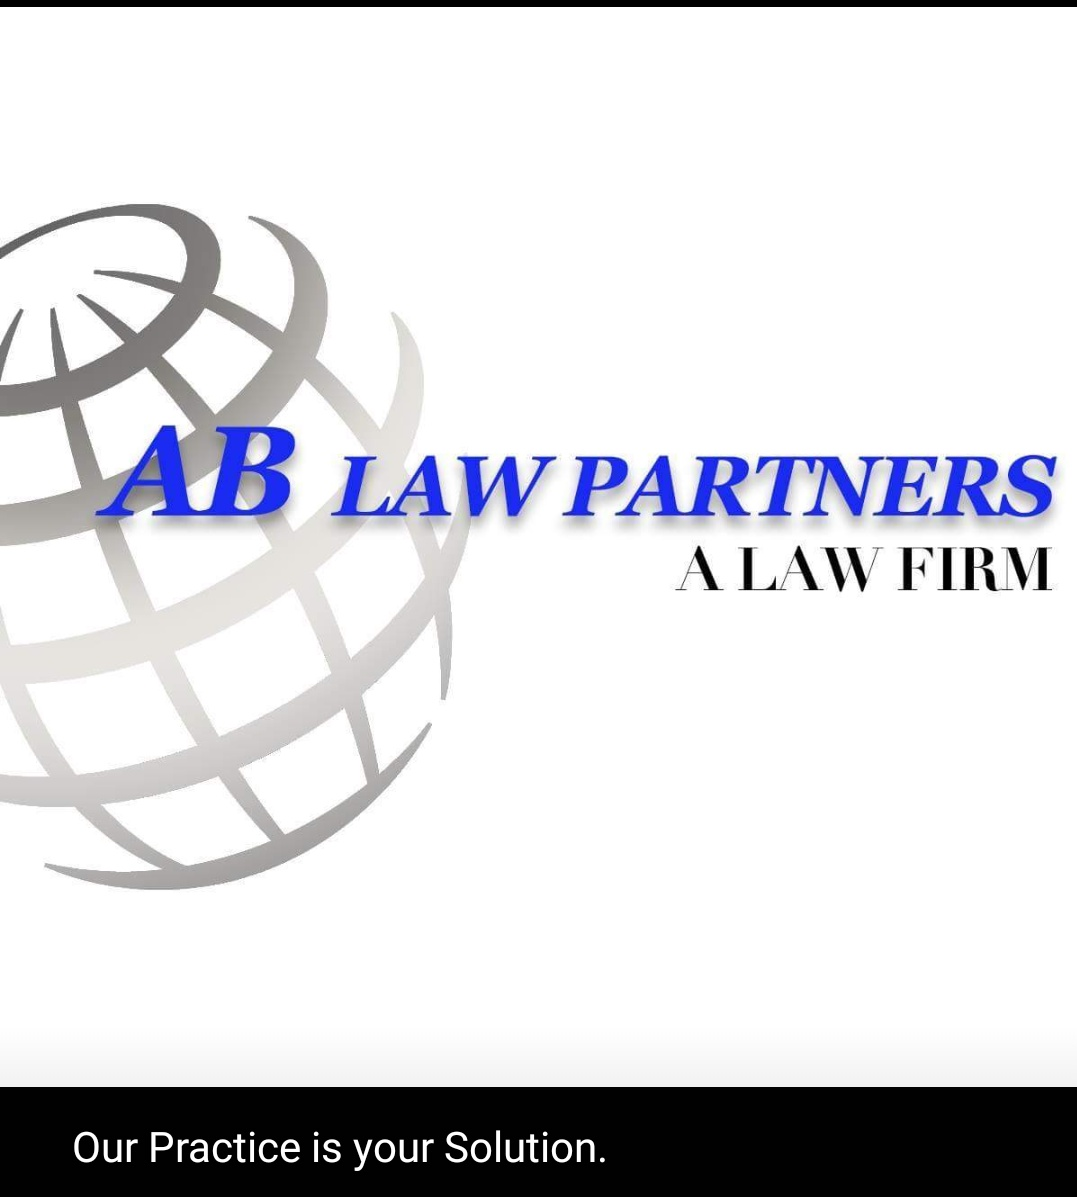 property lawyer in janakpuri,property lawyer in sagarpur,property lawyer in uttam nagar,property lawyer in tilak nagar,property lawyer in delhi cantt,property lawyer in west delhi,property lawyer in west sagarpur,property lawyer in dwarka,property lawyer in palam,property lawyer in janakpuri d block,legal consultants in sagarpur,advocate in janakpuri,advocate in sagarpur,Lawyers for financial dispute in Janakpuri,Lawyers for financial dispute in Punjabi Bagh,Lawyers for financial dispute in Paschim Vihar,Lawyers for financial dispute in Mayapuri,Lawyers for financial dispute in Tilak Nagar,Lawyers for financial dispute in Kirti Nagar,Lawyers for financial dispute in Dwarka,Lawyers for financial dispute in Nangloi,Lawyers for financial dispute in Palam,Lawyers for financial dispute in Mundka,Lawyers for bail matters in Janakpuri,Lawyers for bail matters in Punjabi Bagh,Lawyers for bail matters in Paschim Vihar,Lawyers for bail matters in Mayapuri,Lawyers for bail matters in Tilak Nagar,Lawyers for bail matters in Kirti Nagar,Lawyers for bail matters in Dwarka,Lawyers for bail matters in Nangloi,Lawyers for bail matters in Palam,Lawyers for bail matters in Mundka,Labours Law Lawyers in Janakpuri,Labours Law Lawyers in Punjabi Bagh,Labours Law Lawyers in Paschim Vihar,Labours Law Lawyers in Mayapuri,Labours Law Lawyers in Tilak Nagar,Labours Law Lawyers in Kirti Nagar,Labours Law Lawyers in Dwarka,Labours Law Lawyers in Nangloi,Labours Law Lawyers in Palam,Lawyers for matrimonial cases in Janakpuri,Lawyers for matrimonial cases in Punjabi Bagh,Lawyers for matrimonial cases in Paschim Vihar,Lawyers for matrimonial cases in Mayapuri,Lawyers for matrimonial cases in Tilak Nagar,Lawyers for matrimonial cases in Kirti Nagar,Lawyers for matrimonial cases in Dwarka,Lawyers for matrimonial cases in Nangloi,Lawyers for matrimonial cases in Palam,Lawyers for matrimonial cases in Mundka,Property Lawyer in Janakpuri,Property Lawyer in Punjabi Bagh,Property Lawyer in Paschim Vihar,Property Lawyer in Mayapuri,Property Lawyer in Tilak Nagar,Property Lawyer in Kirti Nagar,Property Lawyer in Dwarka,Property Lawyer in Nangloi,Property Lawyer in Palam,Property Lawyer in Mundka,Advocate in Delhi,Delhi Lawyer,Wakil in Delhi,Advocate for Property,Advocate for Rape Case,Advocate for Marriage,Advocate in Janakpuri,Advocate in India,Advocate in Family Dispute,Advocate in Court,Wakil in Court,Advocate in Adadlat,Wakil in Adalat,Expert Wakil in Delhi,Top Advocate in Janakpuri,Top Wakil in Janakpuri,Top Lawyer in Janakpuri,Best Advocate in Janakpuri,Best Wakil in Janakpuri,Best Lawyer in Janakpuri,Janakpuri Advocate,sagarpur advocate,visa lawyer,advocate in dwarka court,advocate in consumer court,Advocate in Dabri,Advocate in marriage,advocate for job,advocate for termination,advocate for Child,Advocate for girl,advocate for boy,advocate for Case,Advocate for women,advocate for abuse,advocate for self defence,advocate for pension,advocate for bank,advocate for Senior Citizen,Advocate for shop,Advocate for Insurance,Lawyers in Murder case,Lawyers in Job case,Lawyer in Love dispute,Love Matters Advocate,Advocate in Relationship,Human Rights Advocate,RTI Advocate,Police Case Wakil,Wakil in Police case,Advocate in Police case,Advocate in Moter Vehicle Case,RTO case Lawyer,Advocate in Road Case,Advocate in Traffic,Advocate for Husband,Advocate for Wife,Advocate for Son,Advocate for Daughter,Advocate for Son in Law,Advocate for daughter in law,Advocate for Brother,Advocate for Sister,Advocate for Mother,Advocate for Father,Lawyers near me,Near by Lawyer,Near Advocate,Near Wakil,Ghar ke pas advocate,Home Lawyer,House Wakil,Love Wakil,Divorse Wakil,Indian Wakil,Delhi Wakil,Acha Wakil,Suljha Wakil,Helpful Advocate,Helpful Wakil,Helpful Lawyer,Wakil for Uncle,Wakil For Aunty,Wakil for Teacher,Advocate for Sir,Advocate for School,Advocate for College,Advocate for University,School Lawyer,Advocate for Social,Advocate for nature,Advocate for Air,Advocate for Pollution,Advocate for water,Advocate for Electricity,Advocate for BPO,Advocate for Minister,Advocate for Normal,Advocate for Physical,Advocate for Internet,Advocate for harrasment,Cyber Lawyer,Cyber Advocate,Advocate for Privacy,Advocate for Copyright